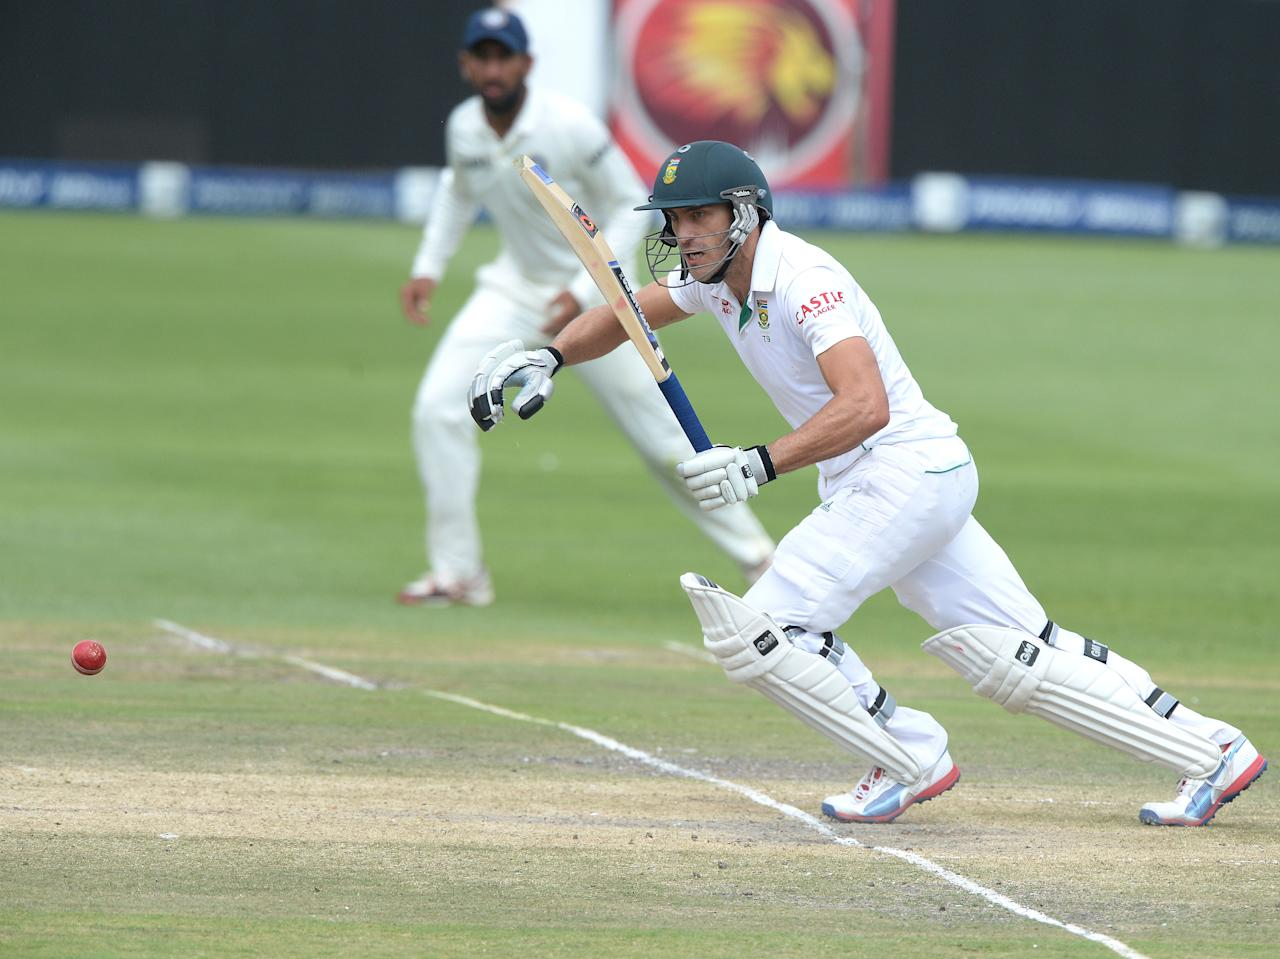 JOHANNESBURG, SOUTH AFRICA - DECEMBER 22:  Faf du Plessis of South Africa sets off for a run during day 5 of the 1st Test match between South Africa and India at Bidvest Wanderers Stadium on December 22, 2013 in Johannesburg, South Africa. (Photo by Duif du Toit/Gallo Images)